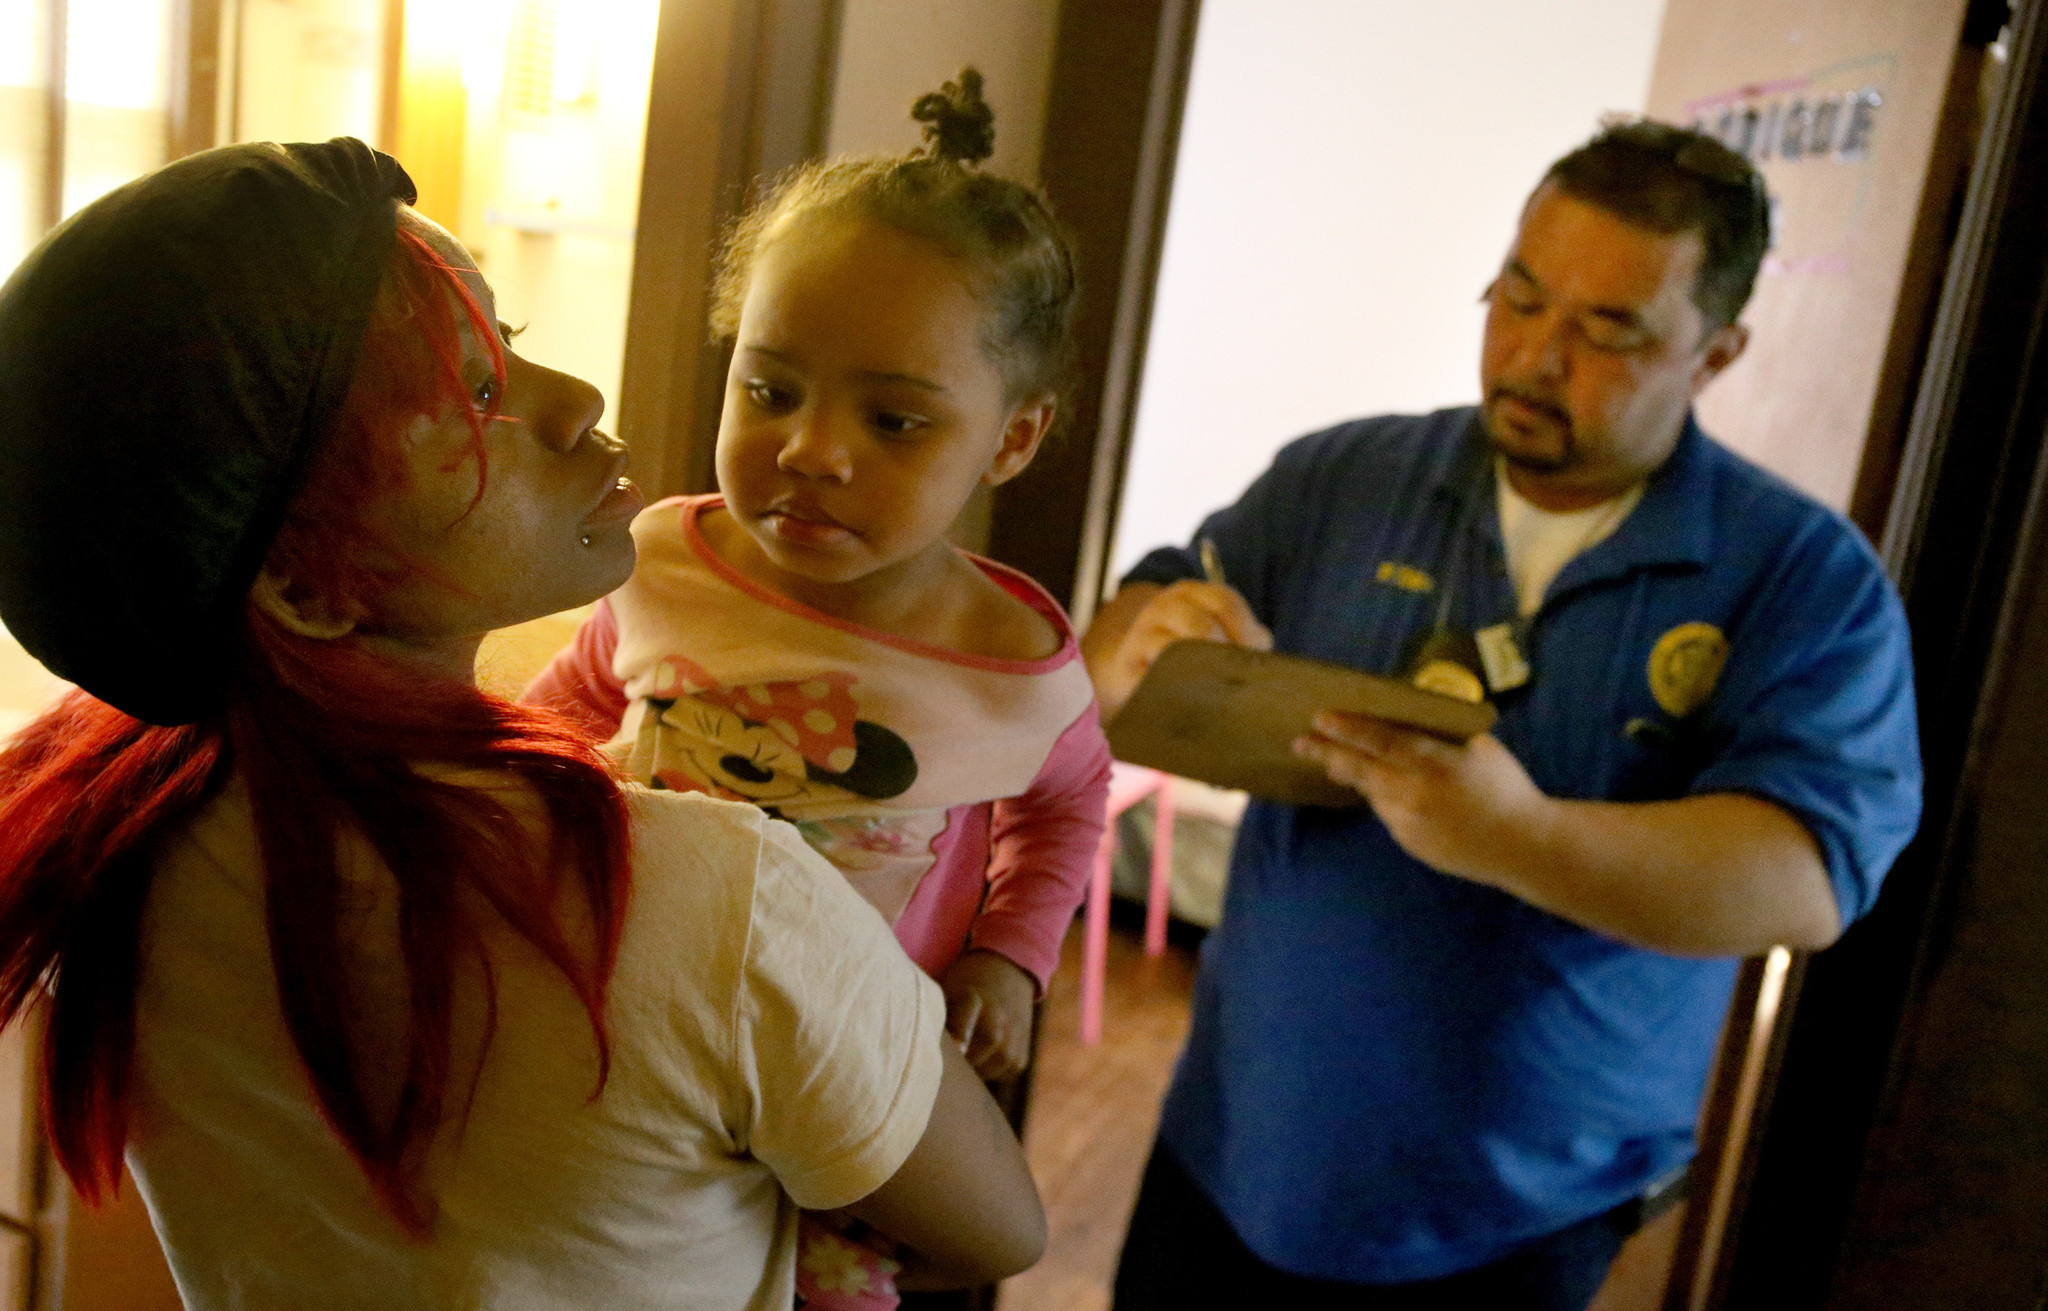 lead paint poisons poor chicago kids as city spends millions less on